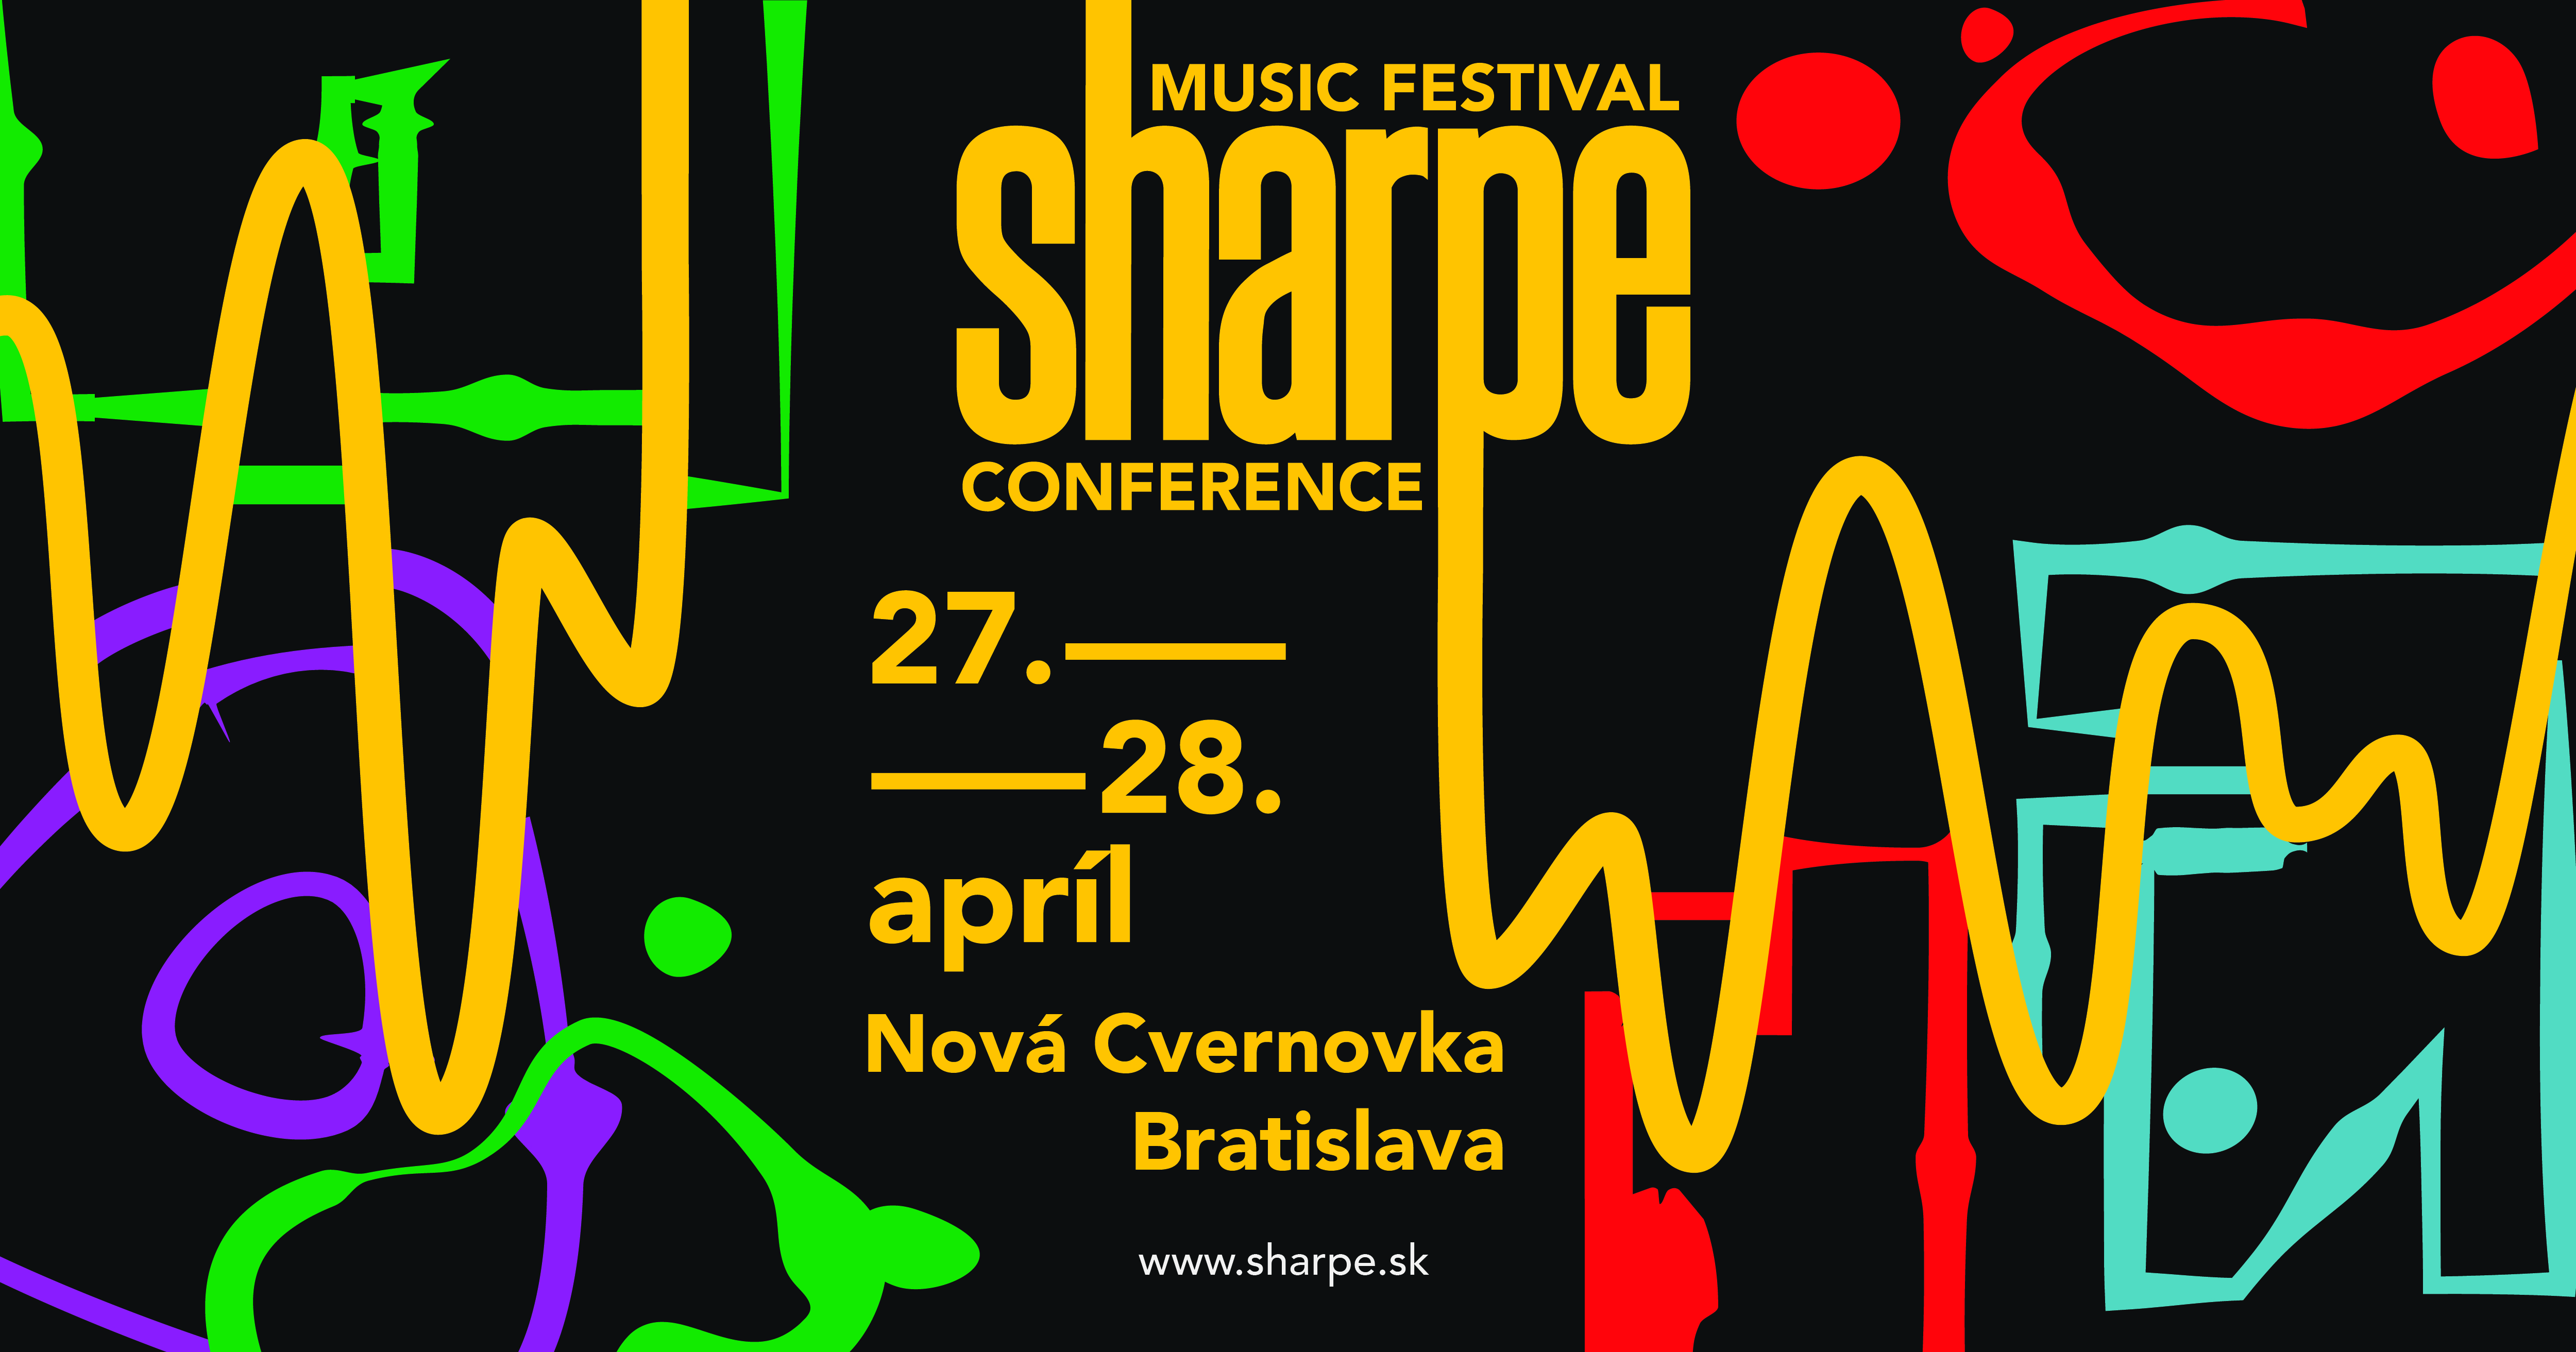 SHARPE design Lukas Karaba